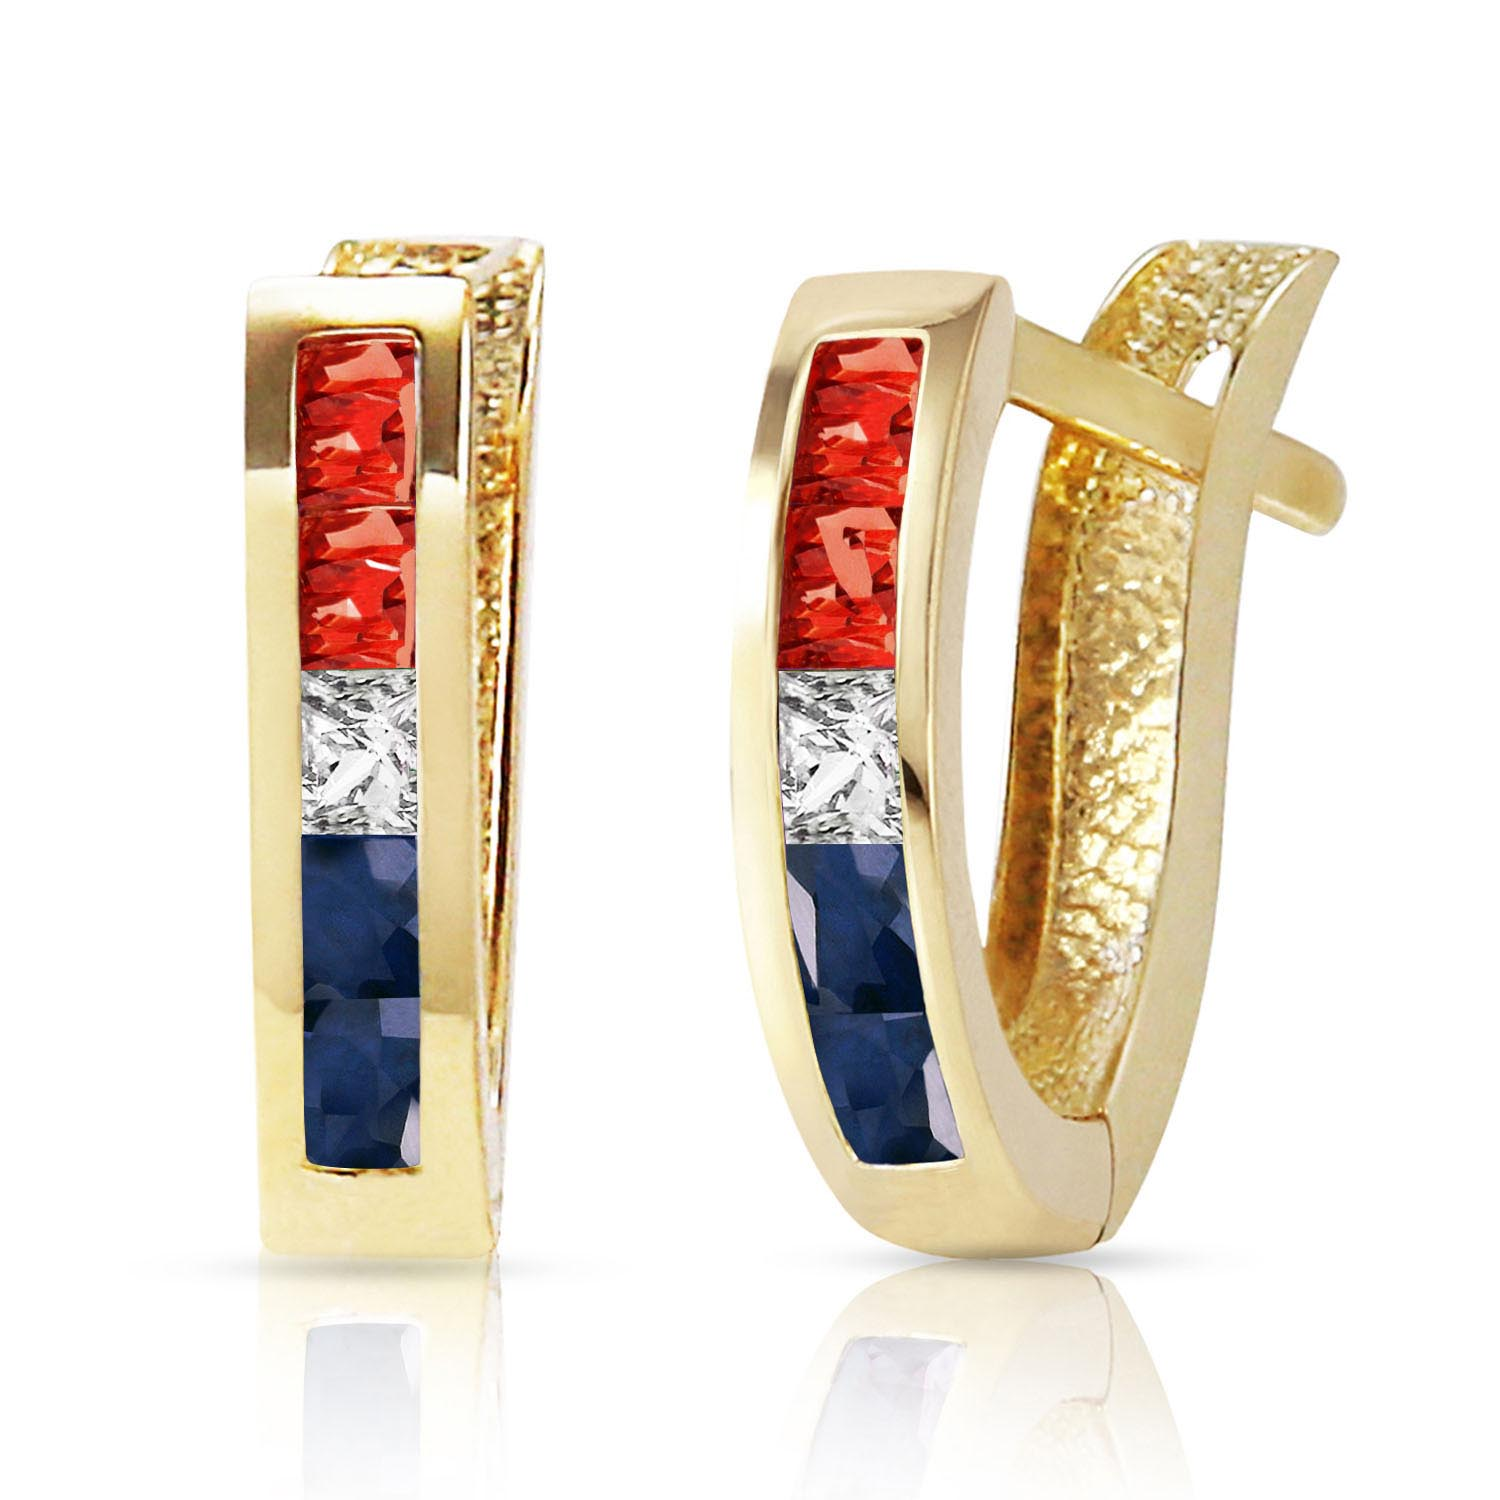 Gemstone Acute Huggie Earrings 1.28 ctw in 9ct Gold